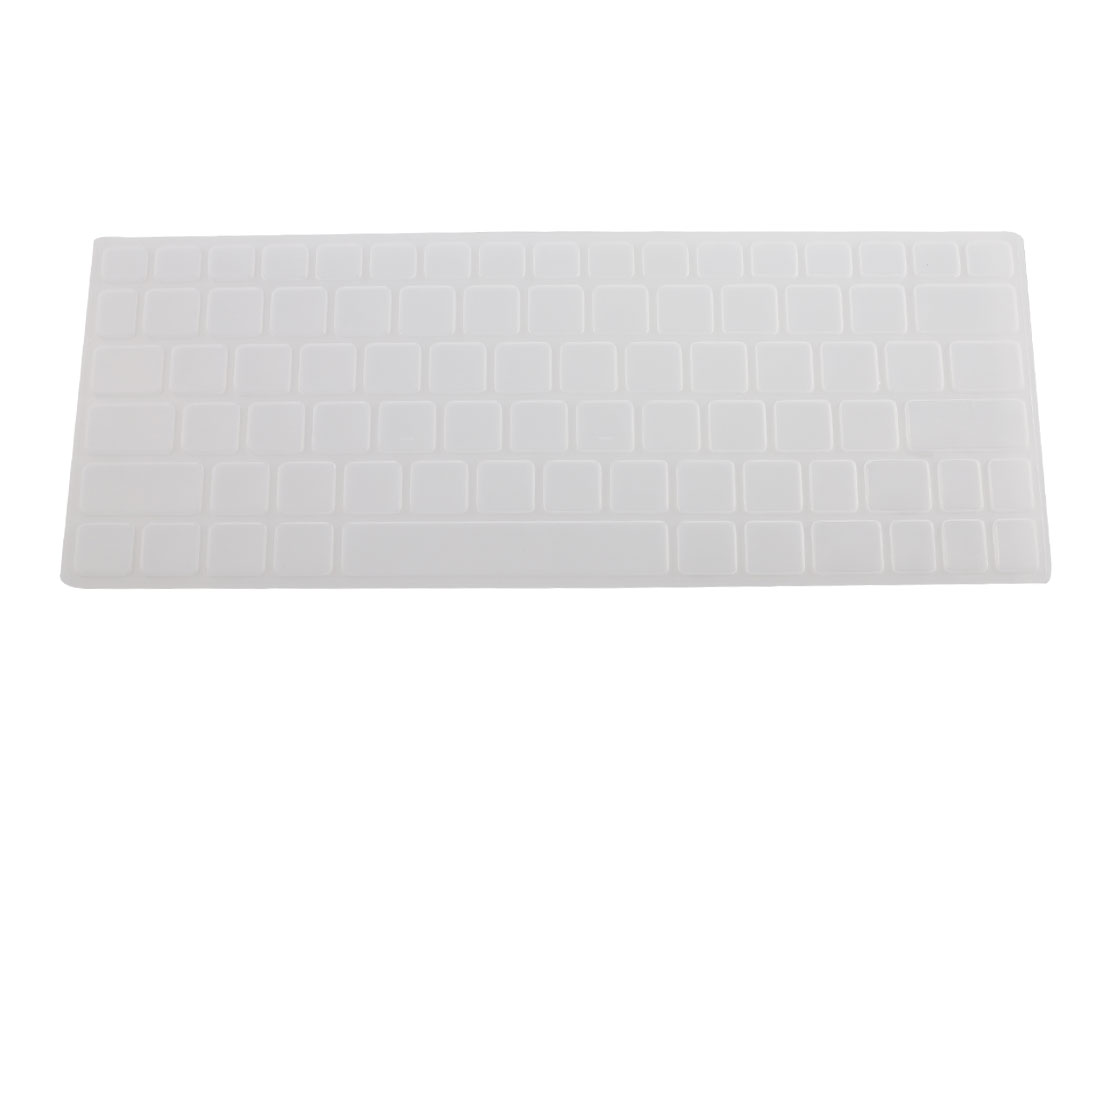 Clear Silicone Keyboard Protective Cover Film for Asus EPC 1000HE 1004DN 1015T